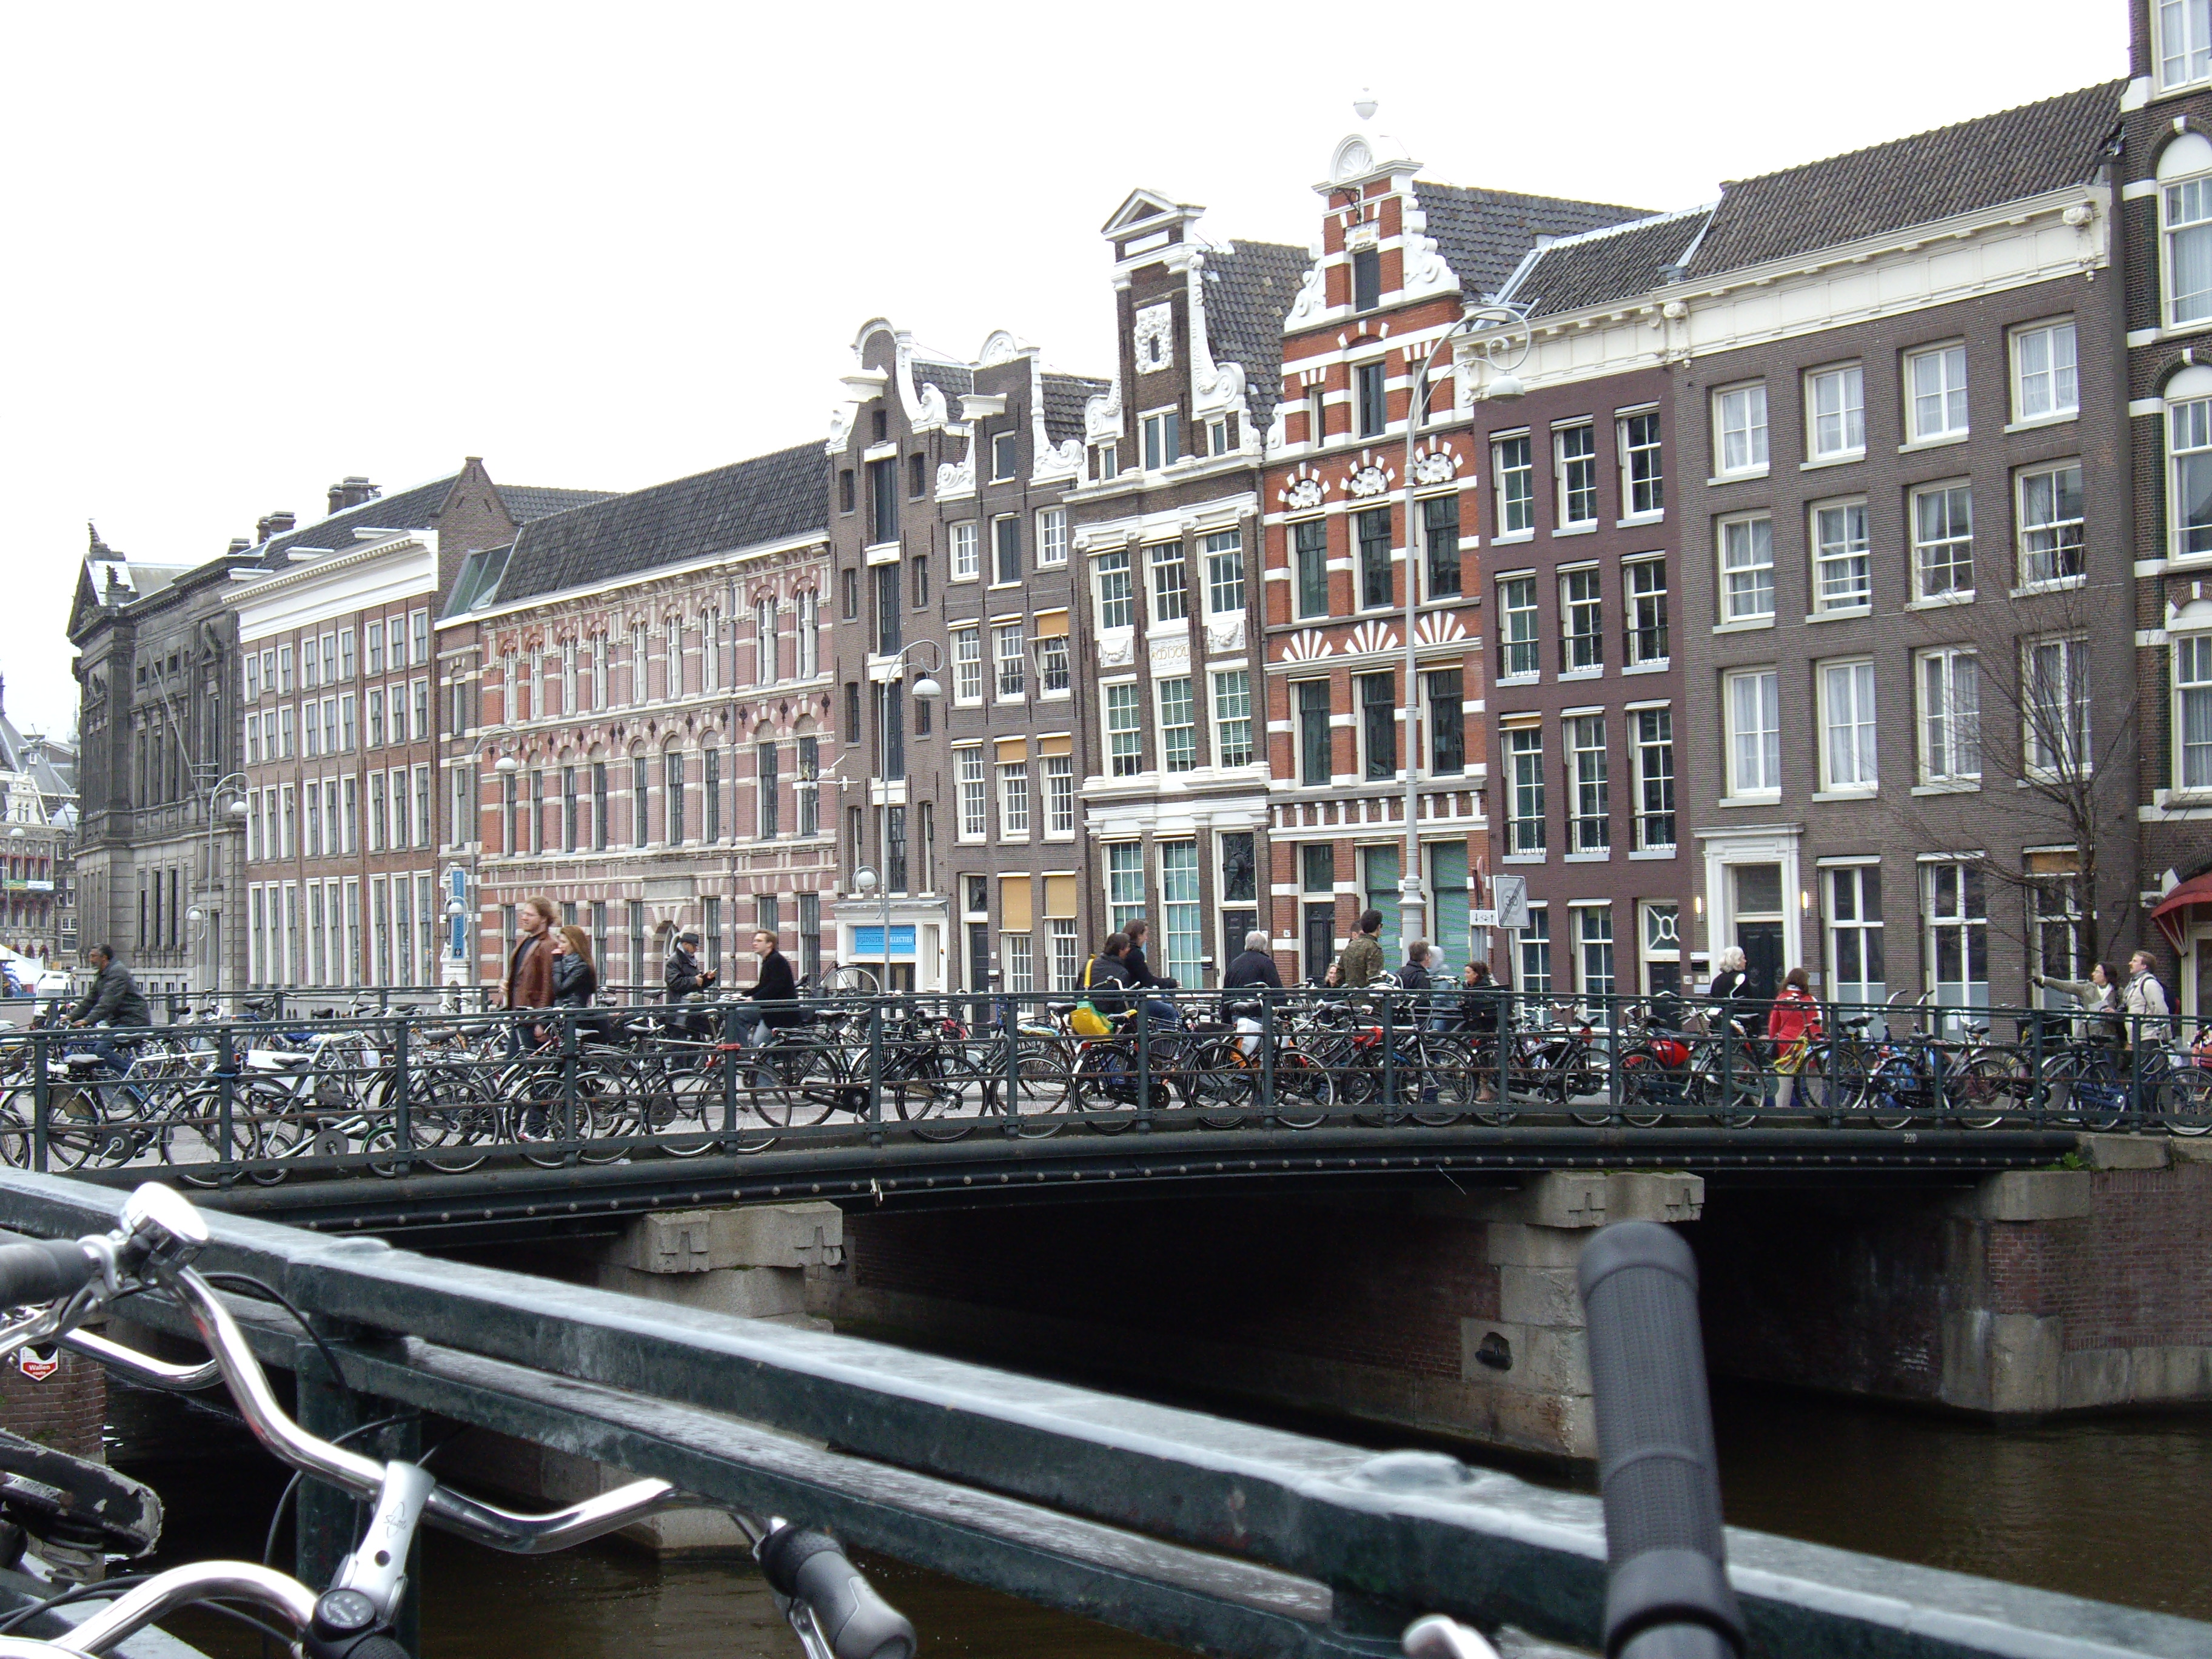 AMSTERDAM - Voyage Week End Escapage Visiter Amsterdam - 4522444656_1d02a7a094_o